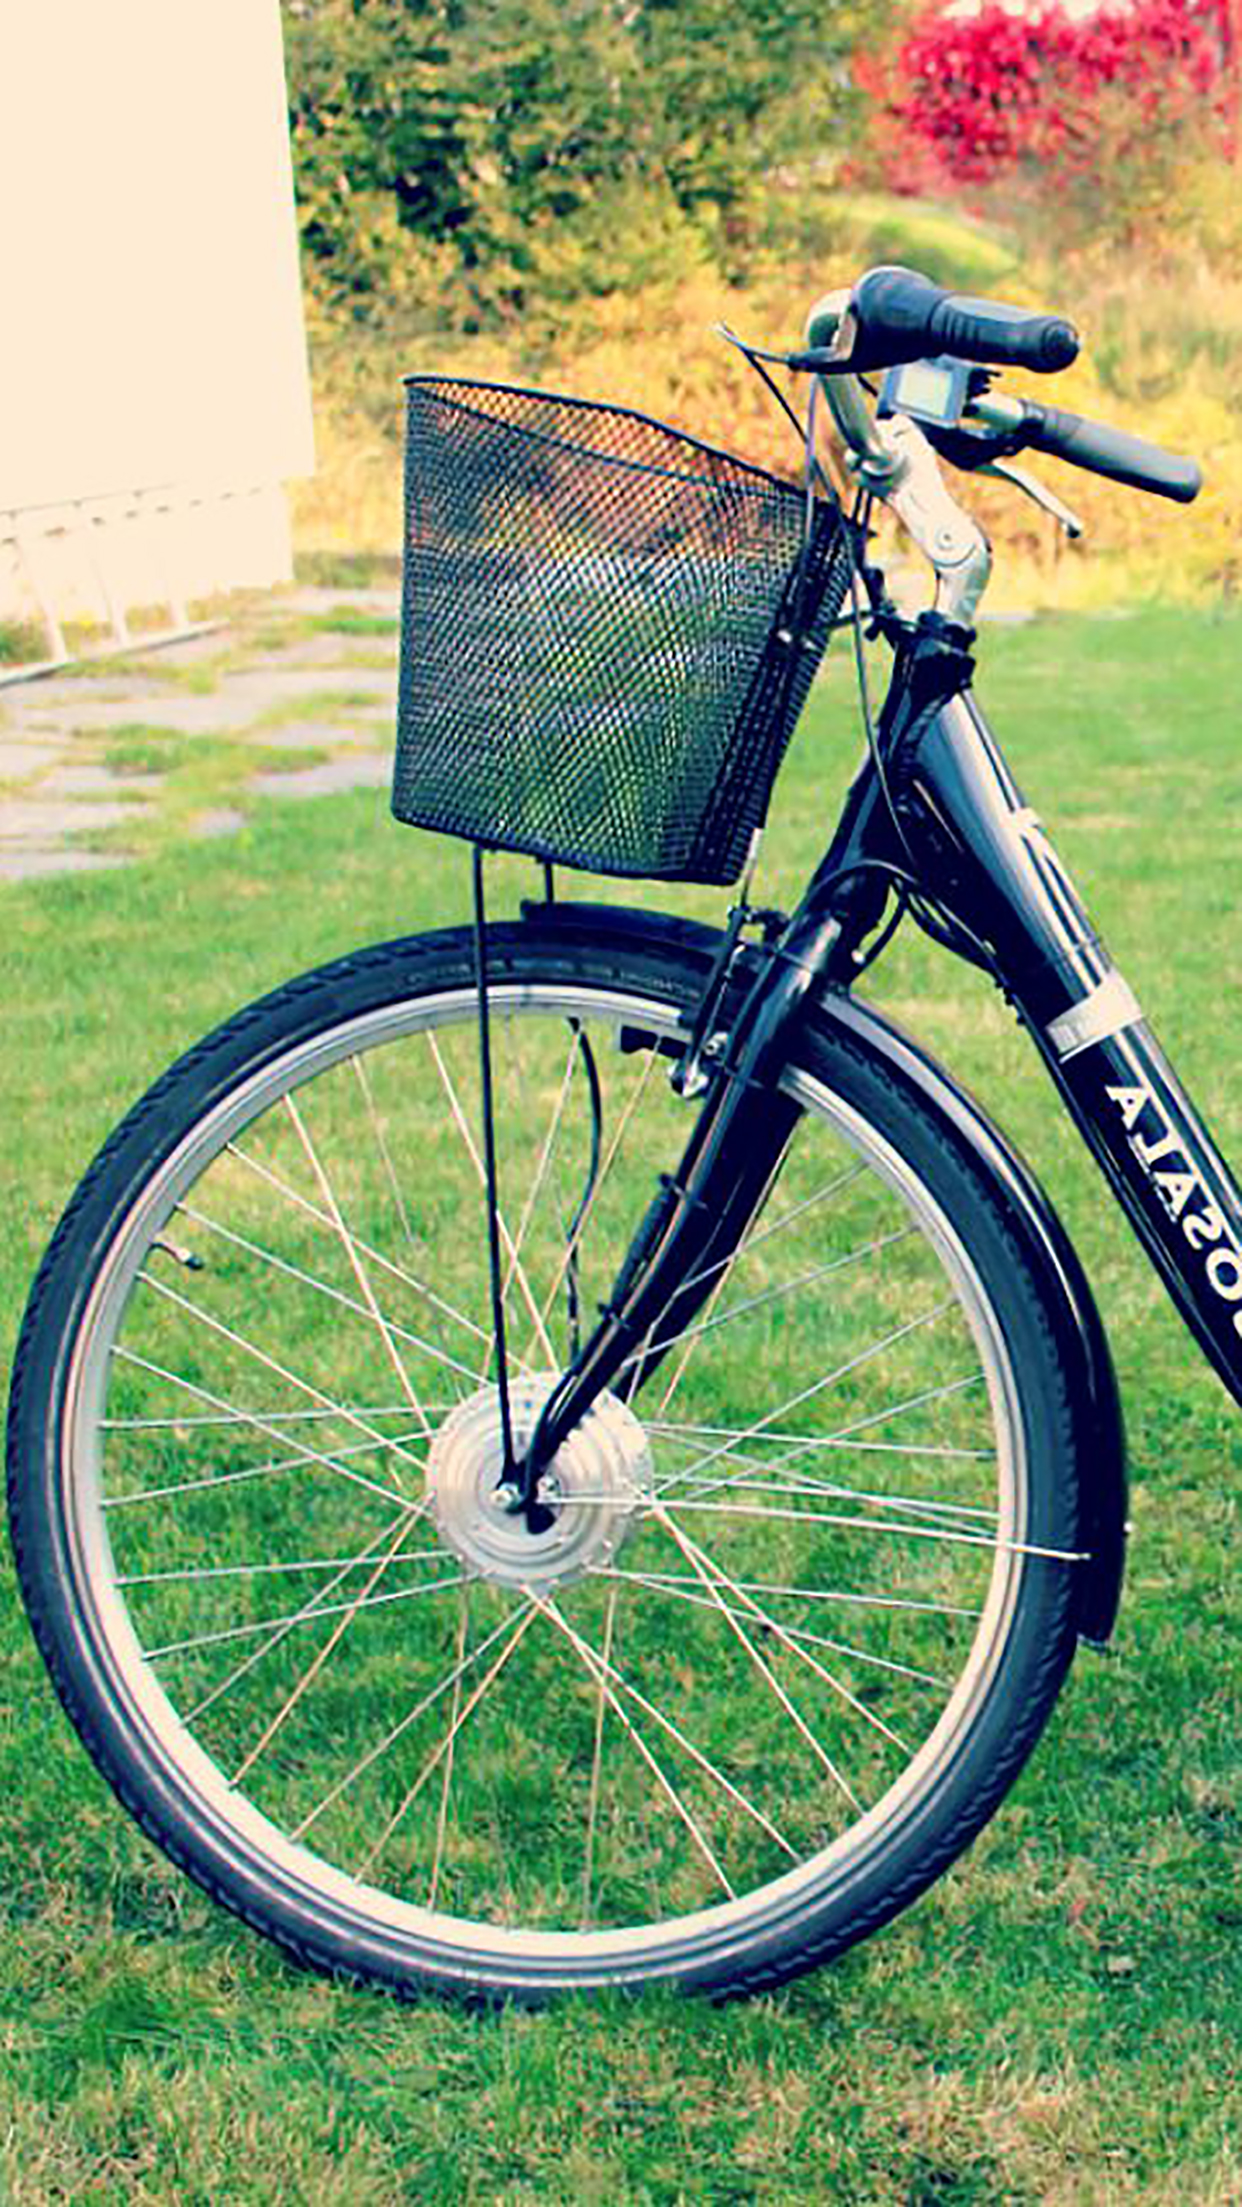 Bike Electric Bike 3Wallpapers iPhone Parallax Bike : Electric Bike